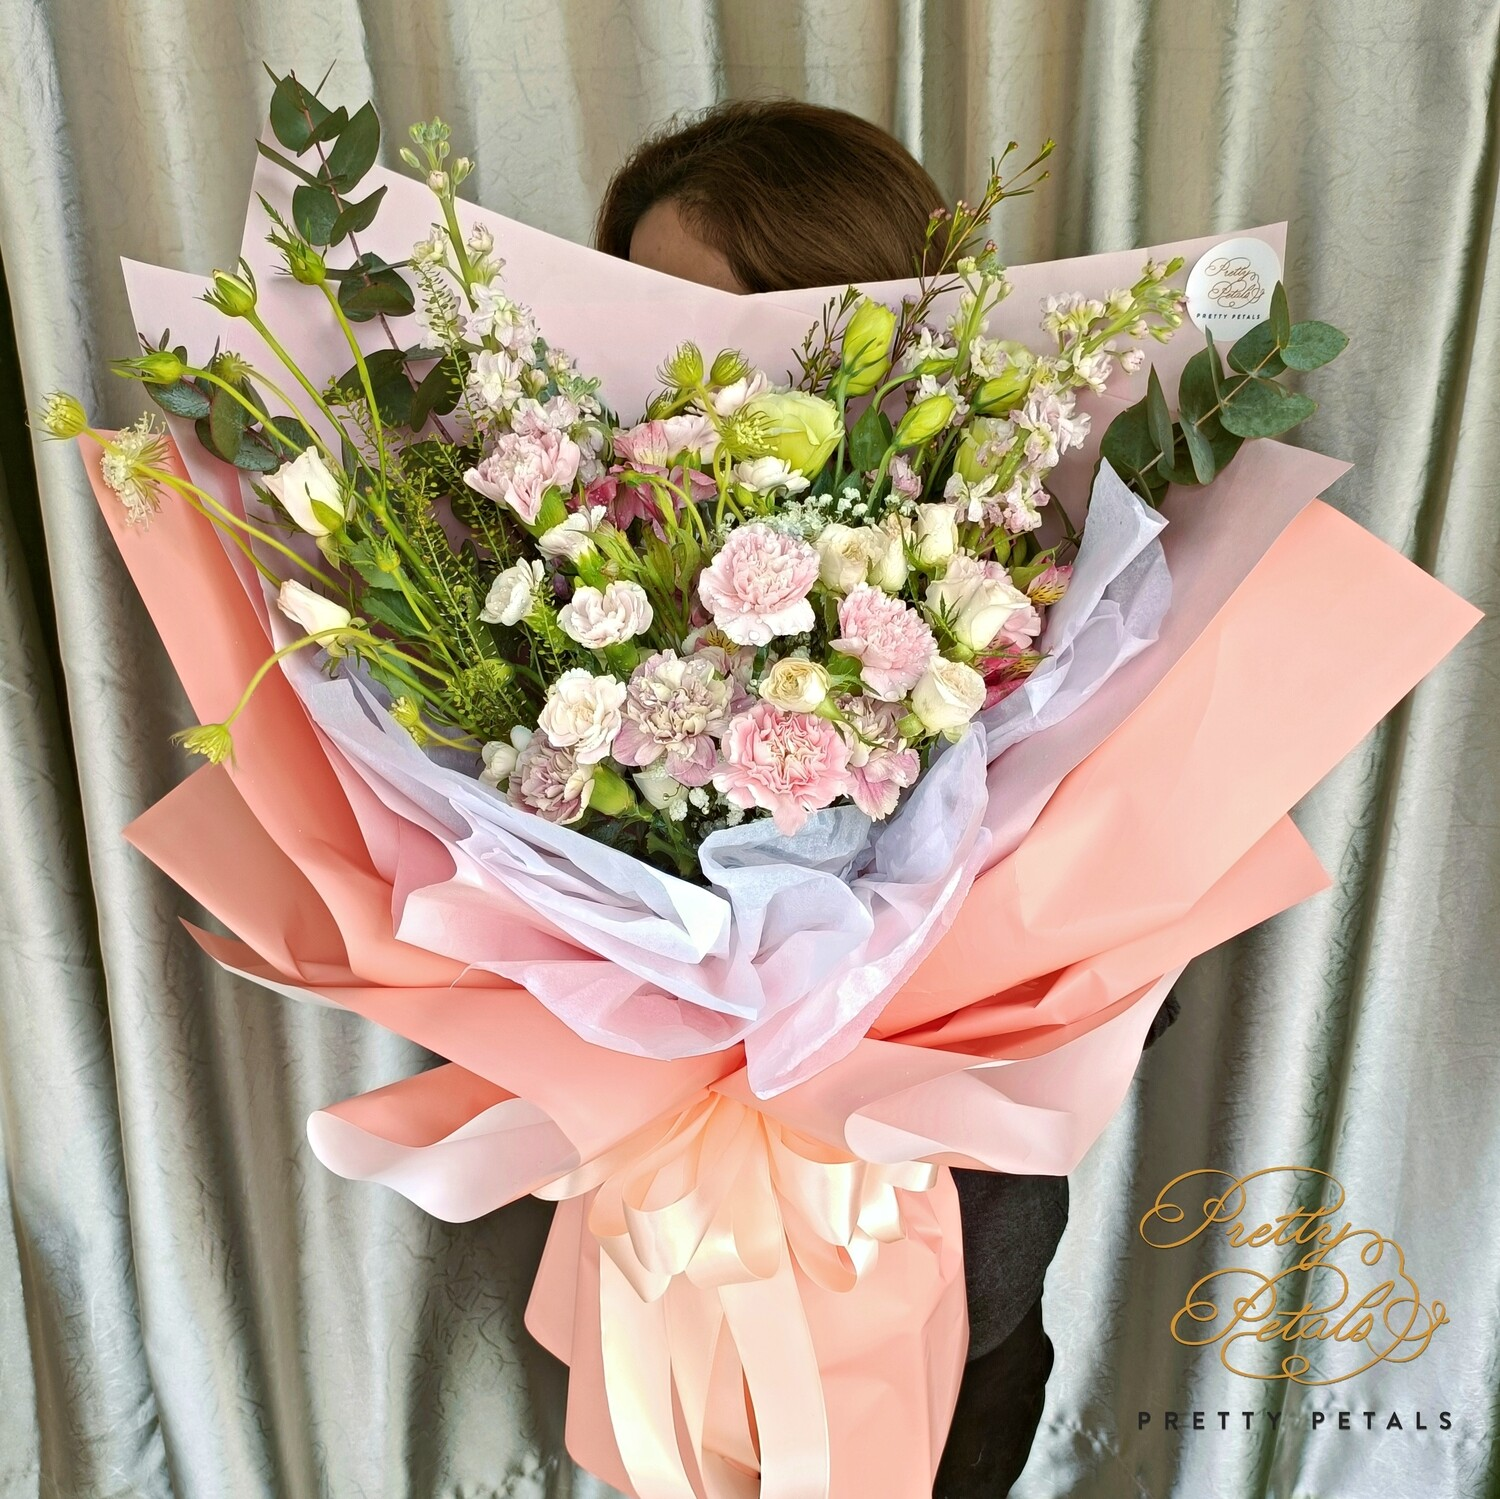 Spring Love (By: Pretty Petals from Kuching)